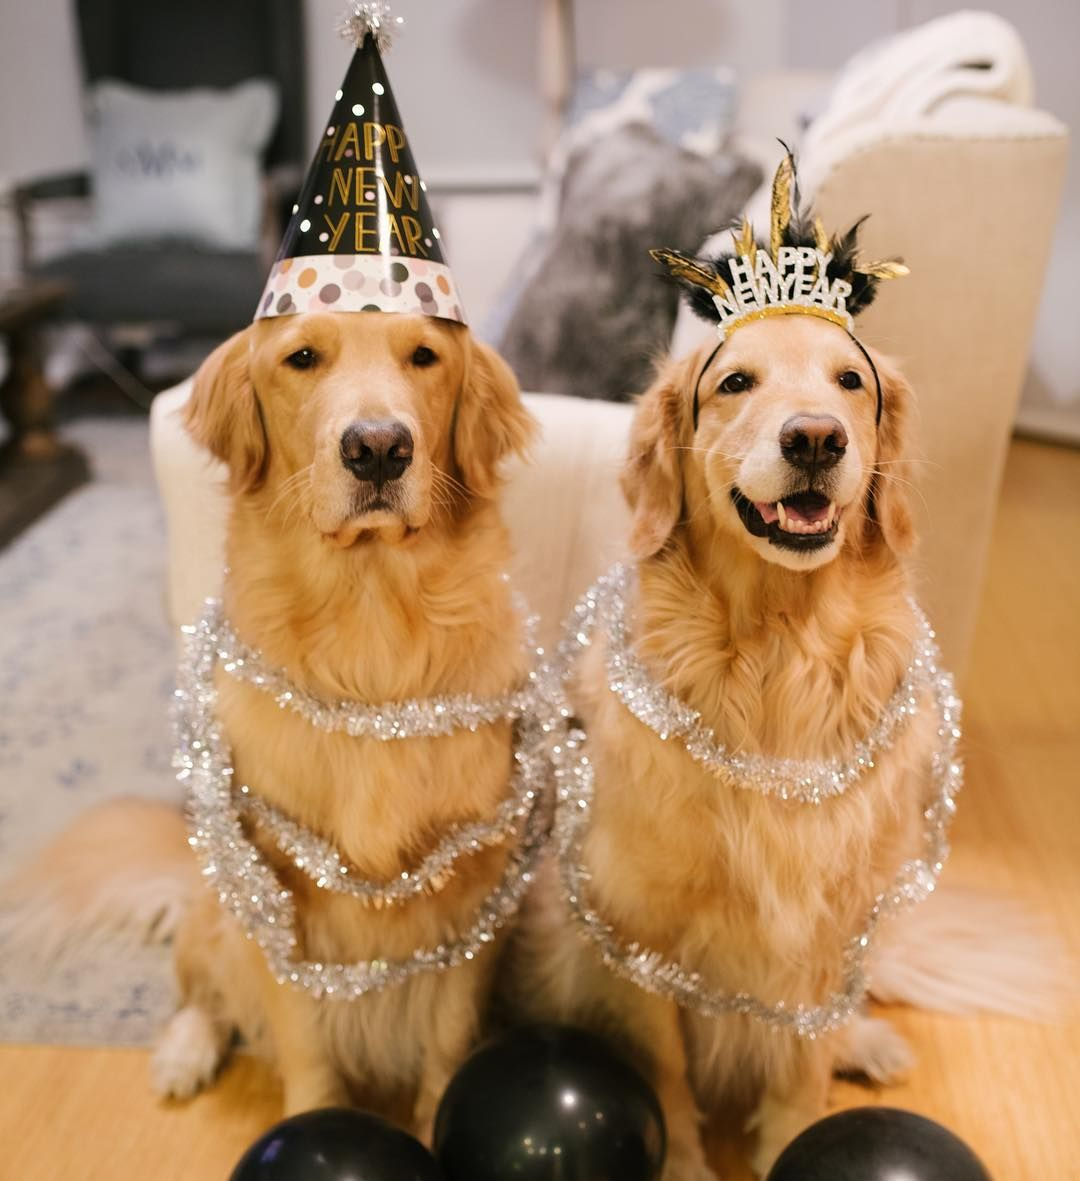 These Golden Retriever Pups Really Know How To Ring In The New